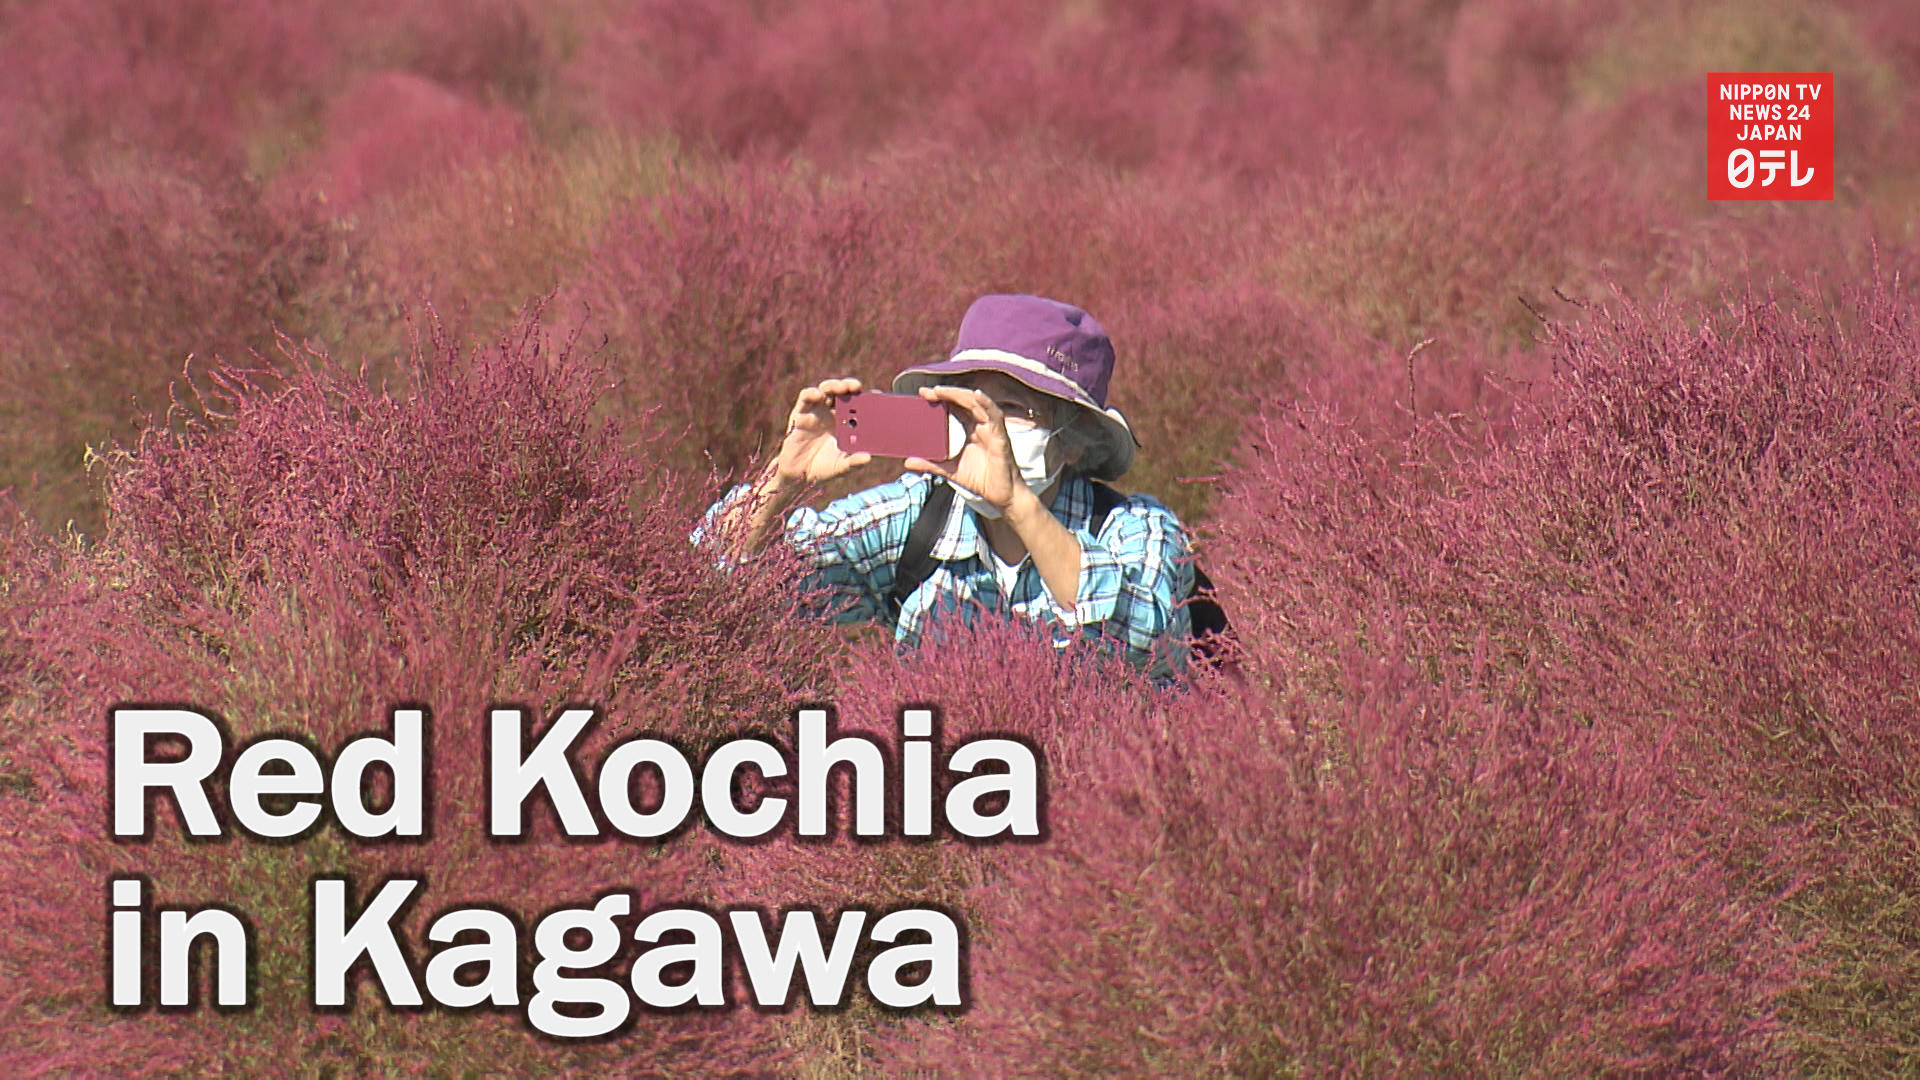 Red kochia leaves attract visitors in western Japan